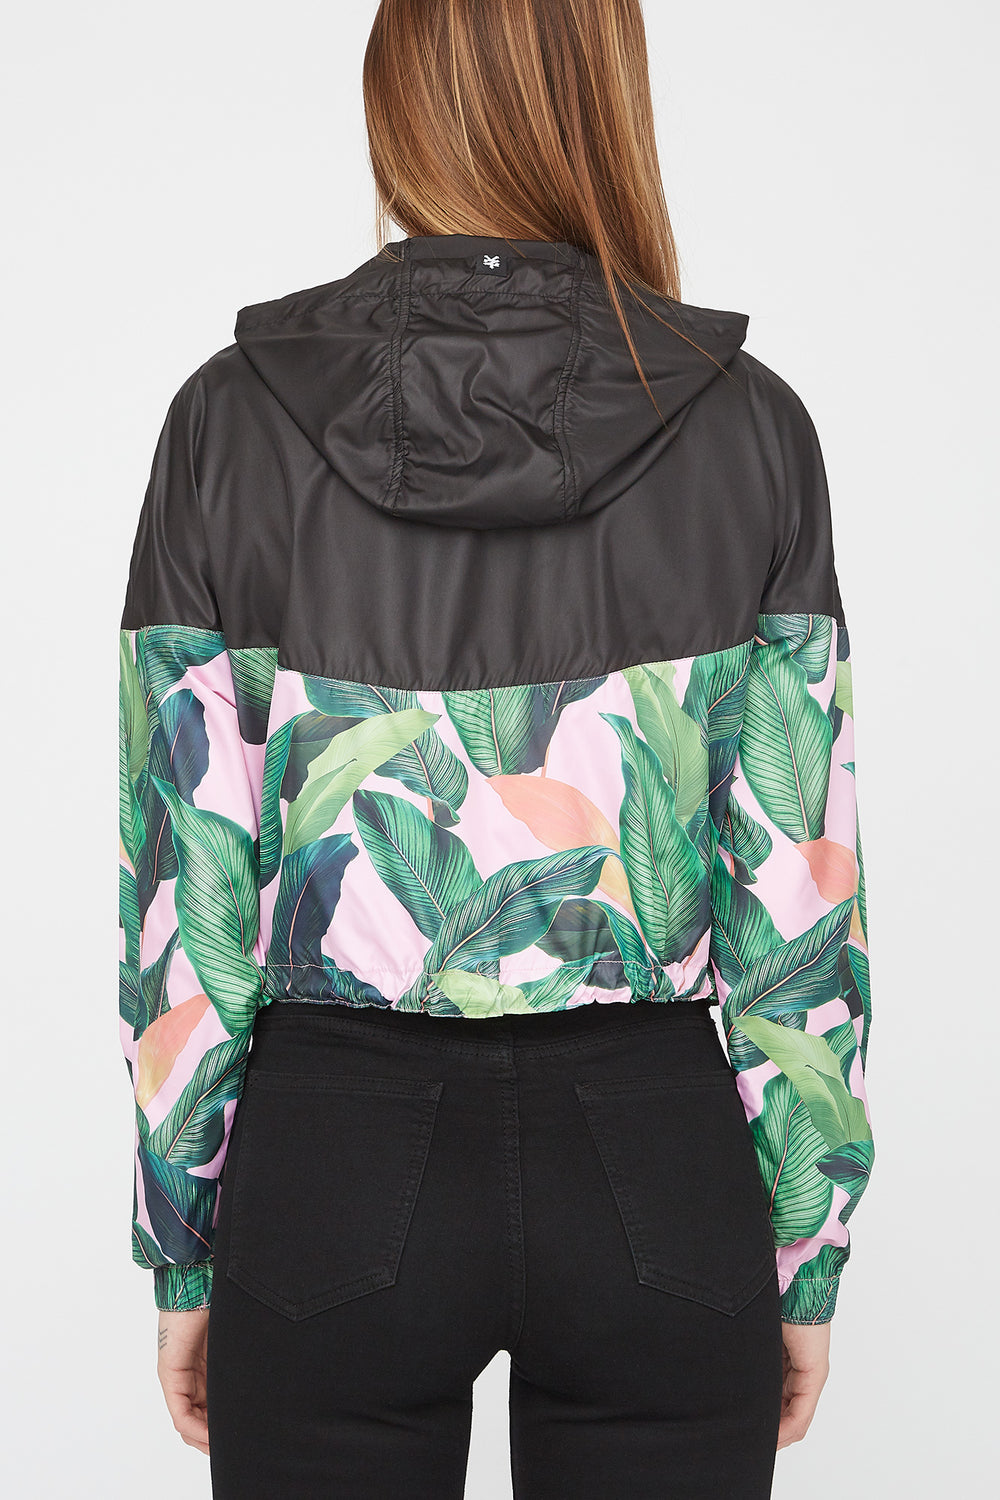 Manteau Tropical Zoo York Femme Noir Total